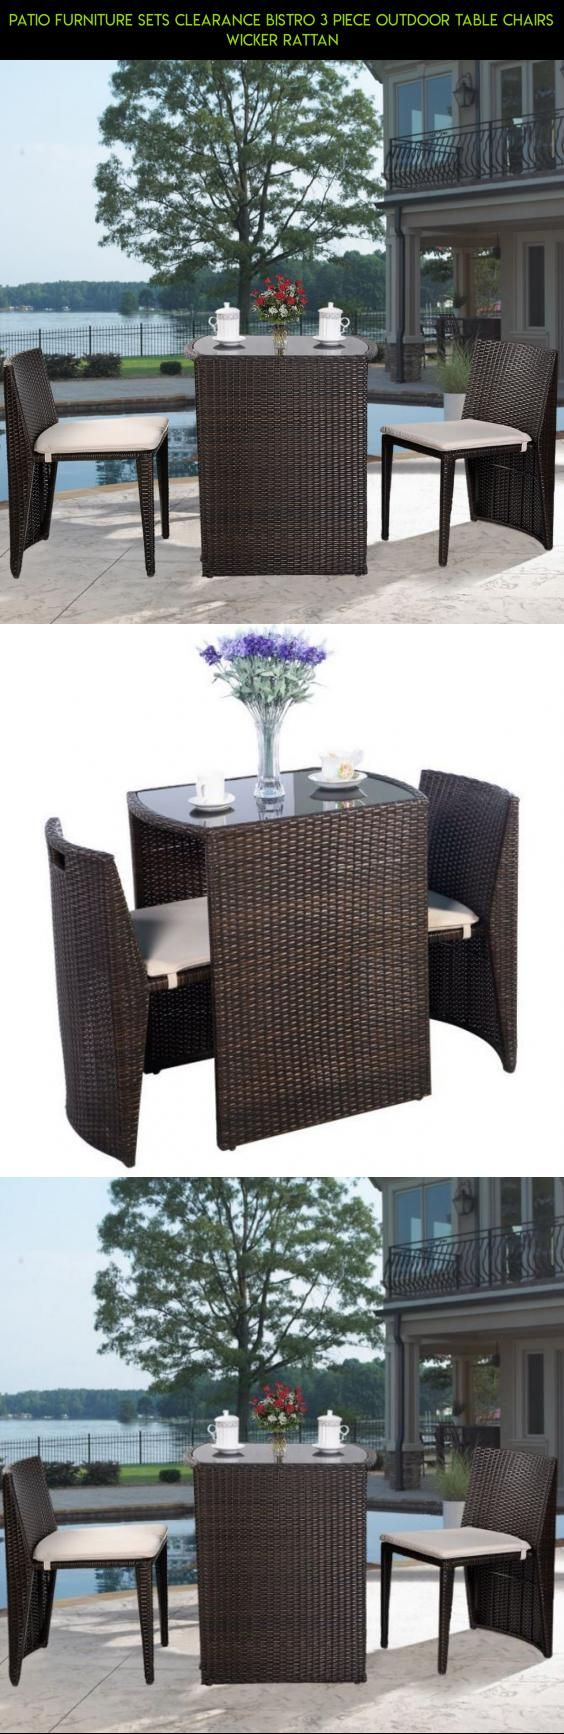 Patio Furniture Sets Clearance Bistro 3 Piece Outdoor Table Chairs Wicker  Rattan #products #3